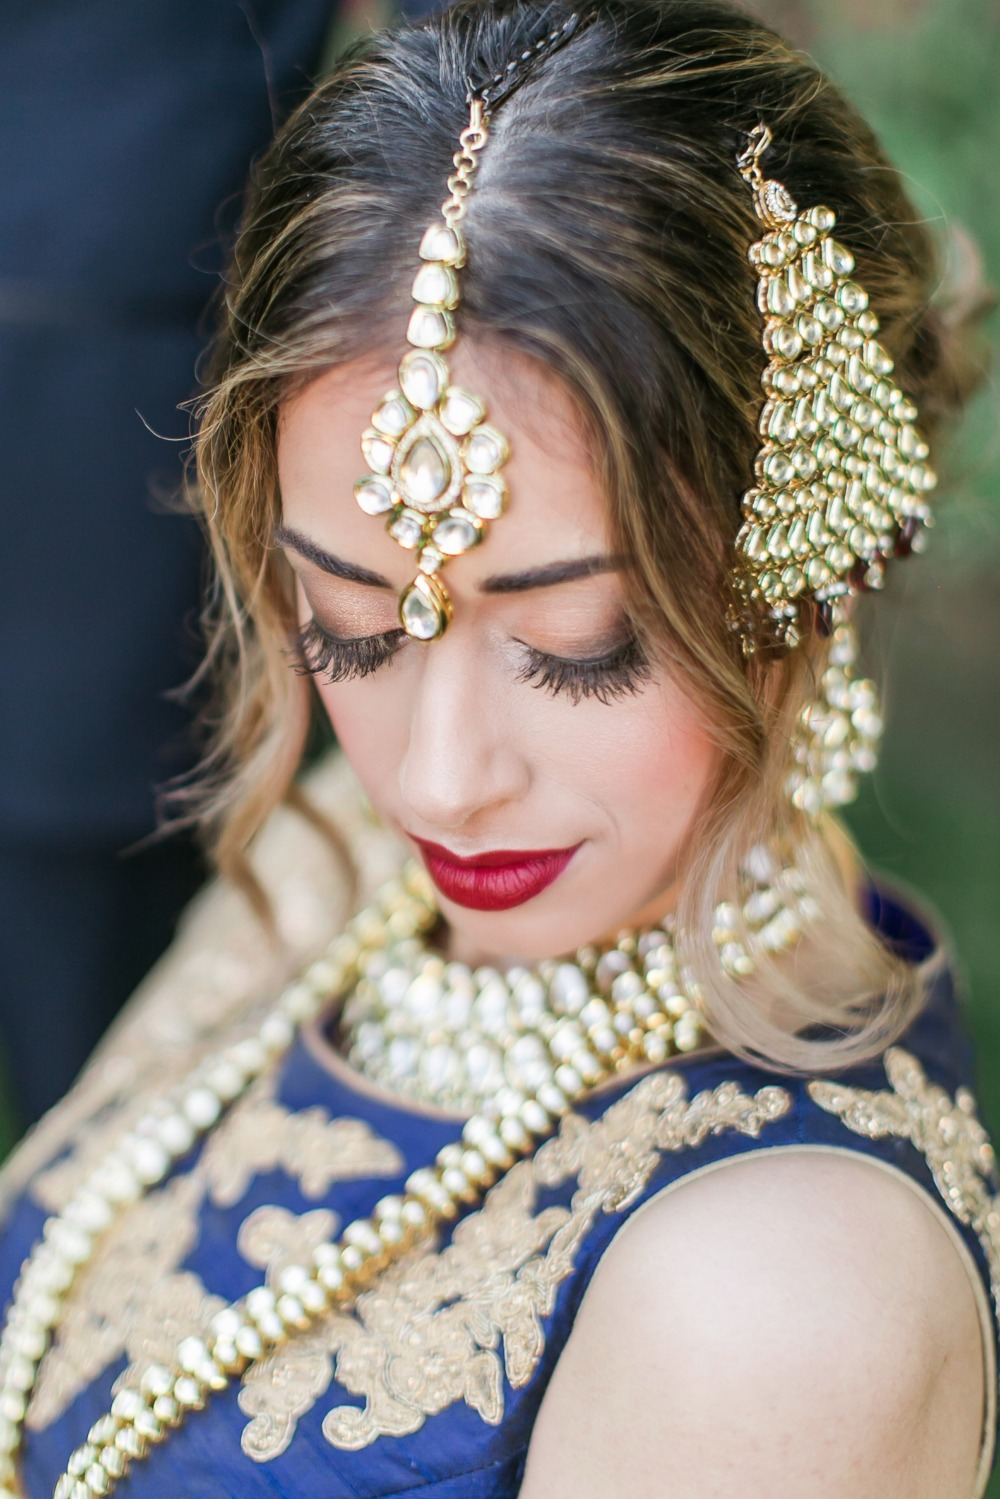 Ornate bridal jewelry